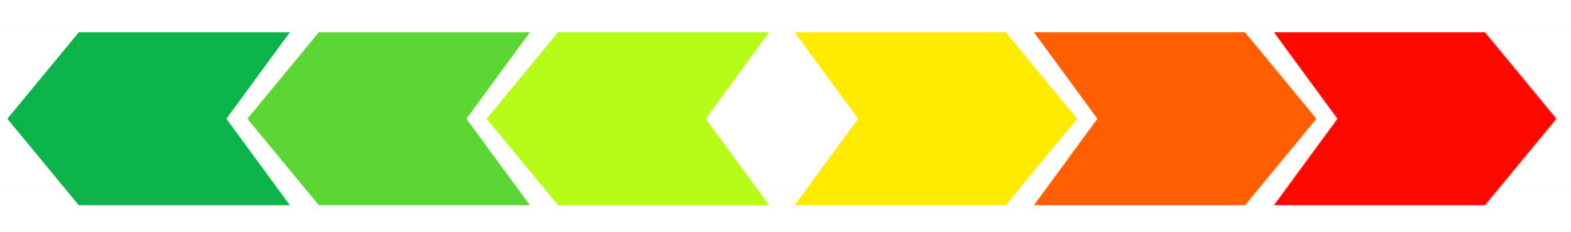 Graphic of a continuum of colours (from left to right): dark green, moss green, lime green, yellow, orange, red